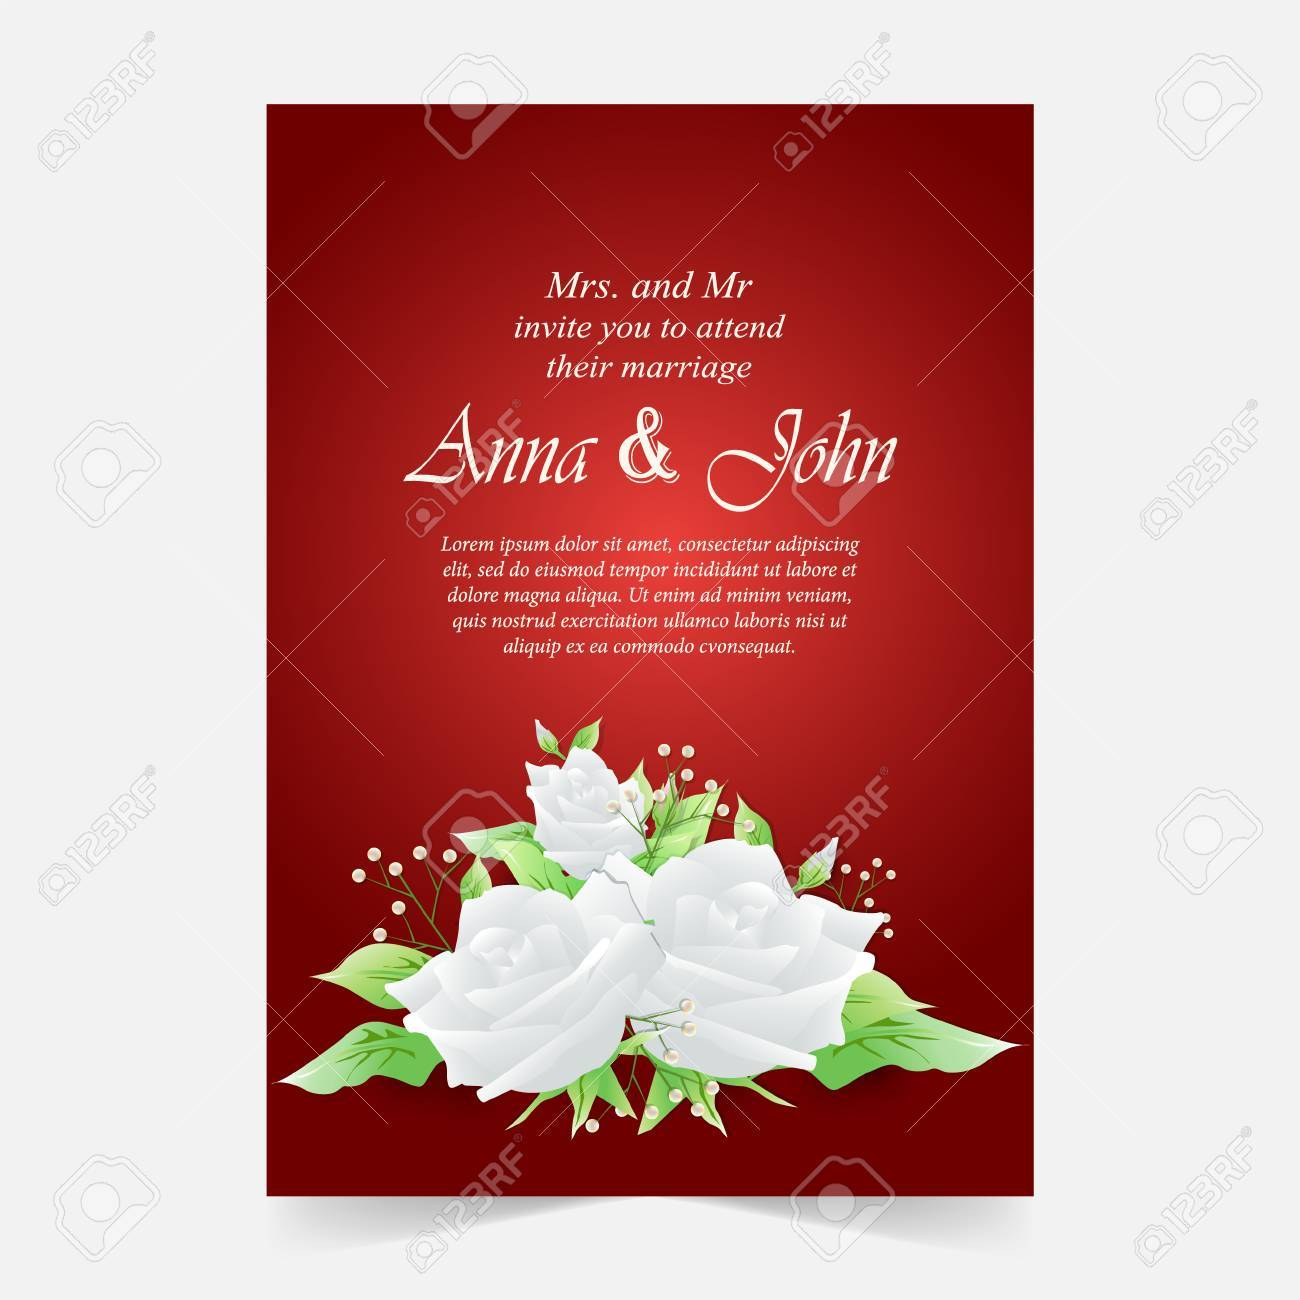 Invitation Card, Wedding Card With White Rose Background Royalty ...